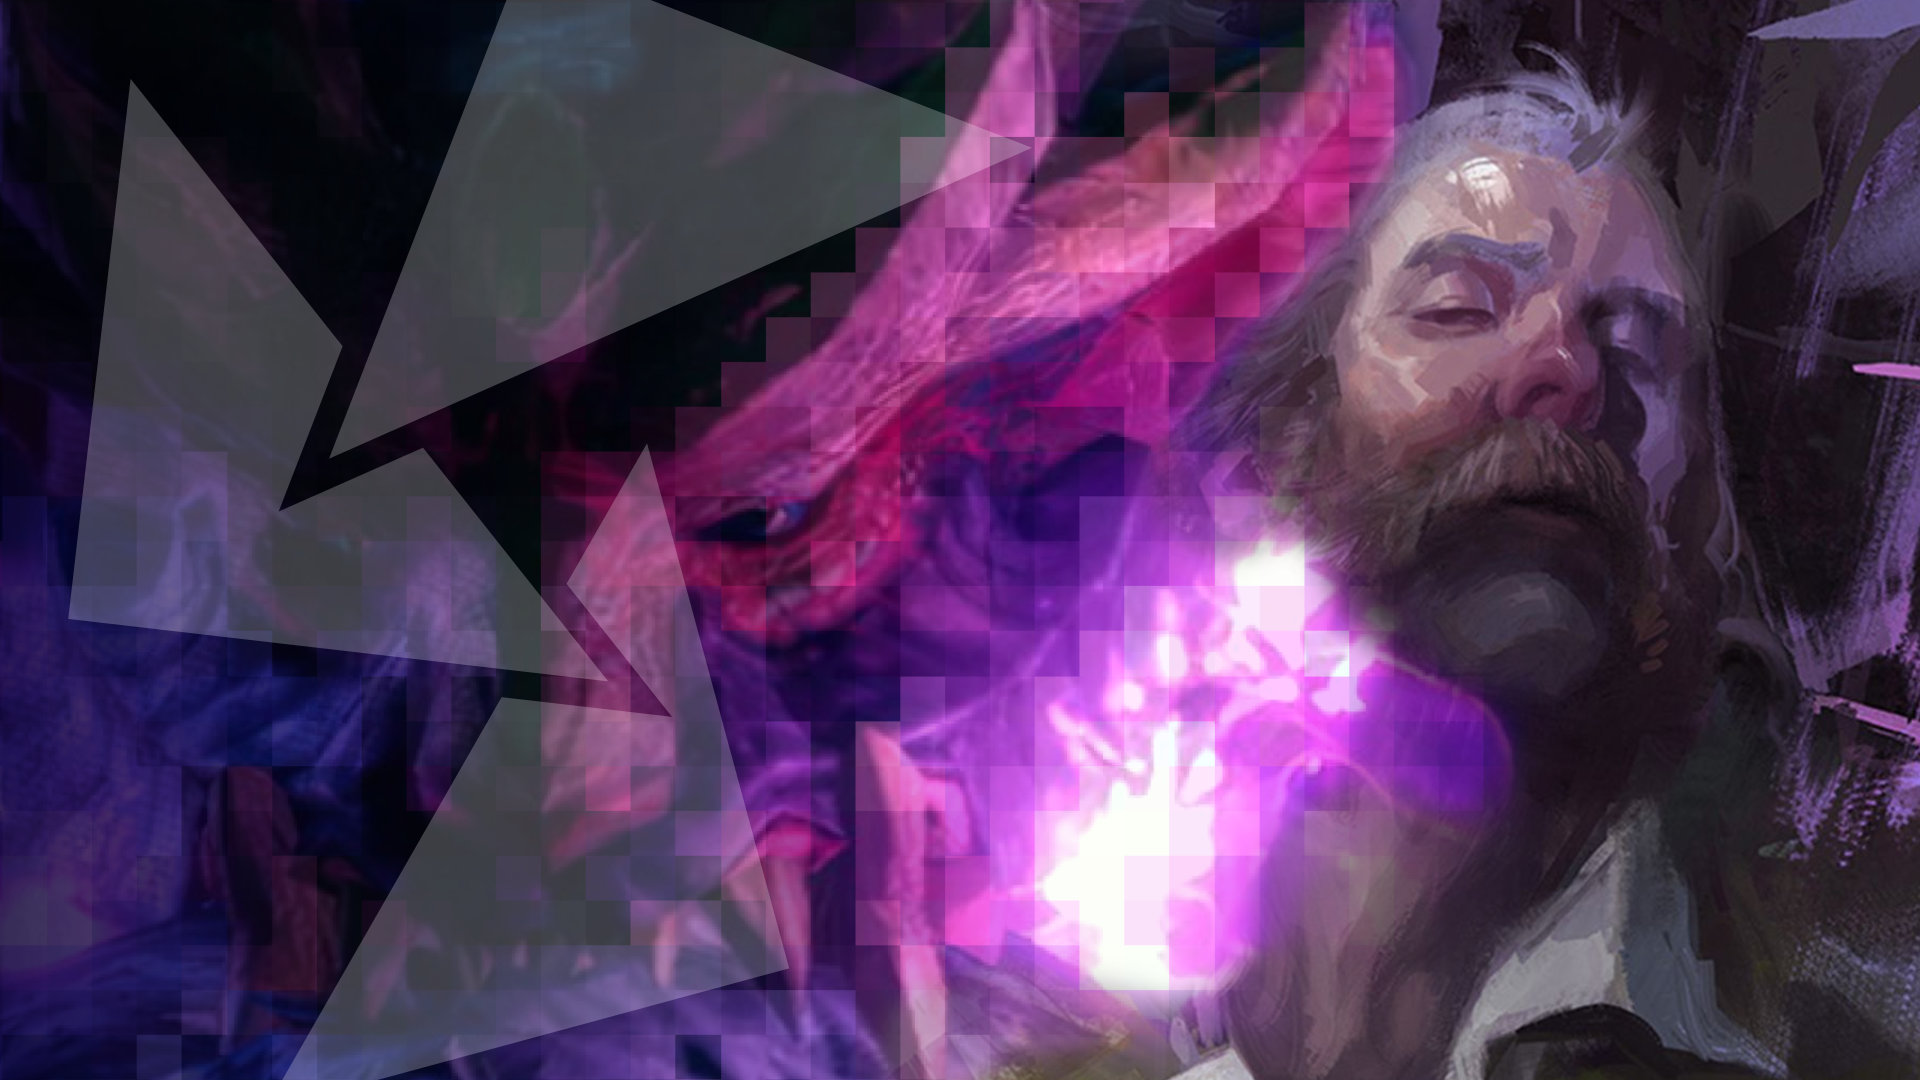 An infernal beast wreathed in purple fire from Monster Hunter Rise is next to a portrait of a bearded, older gentleman from Disco Elysium.